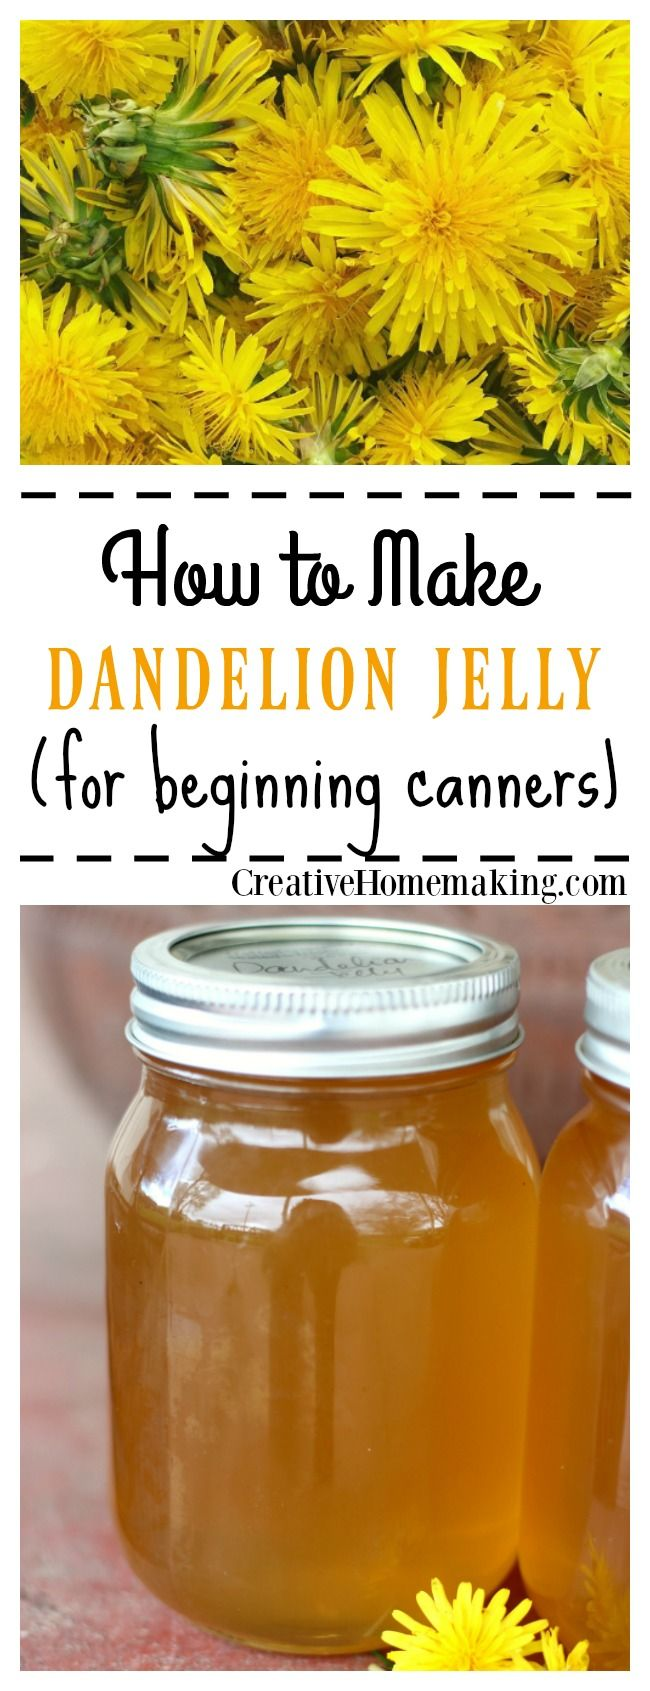 Canning Dandelion Jelly